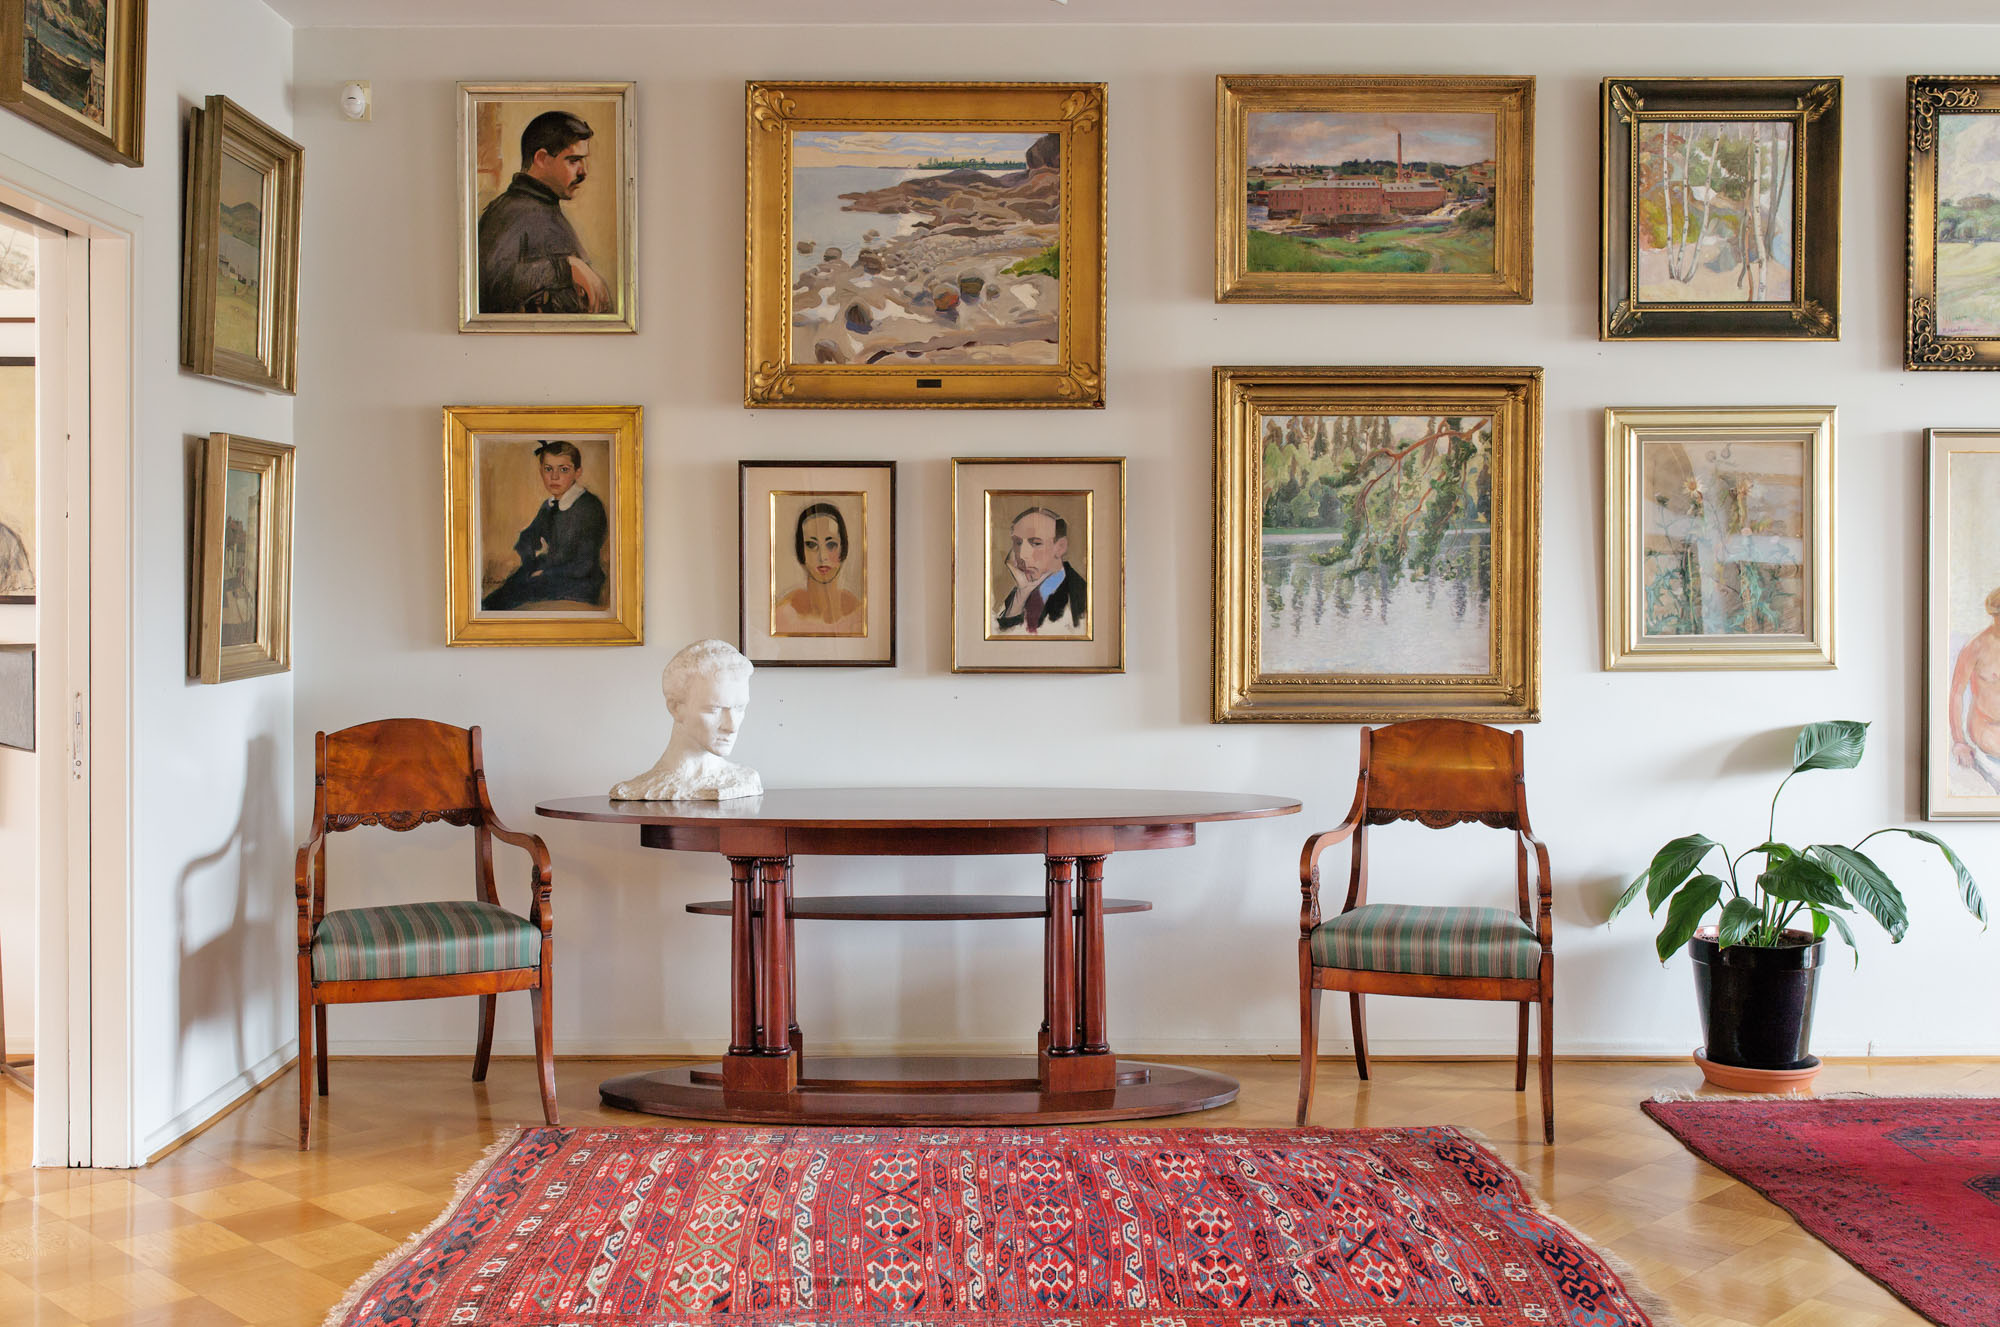 Kirpilä Art Collection will open to the public on Wednesday 5 May at 2 pm!